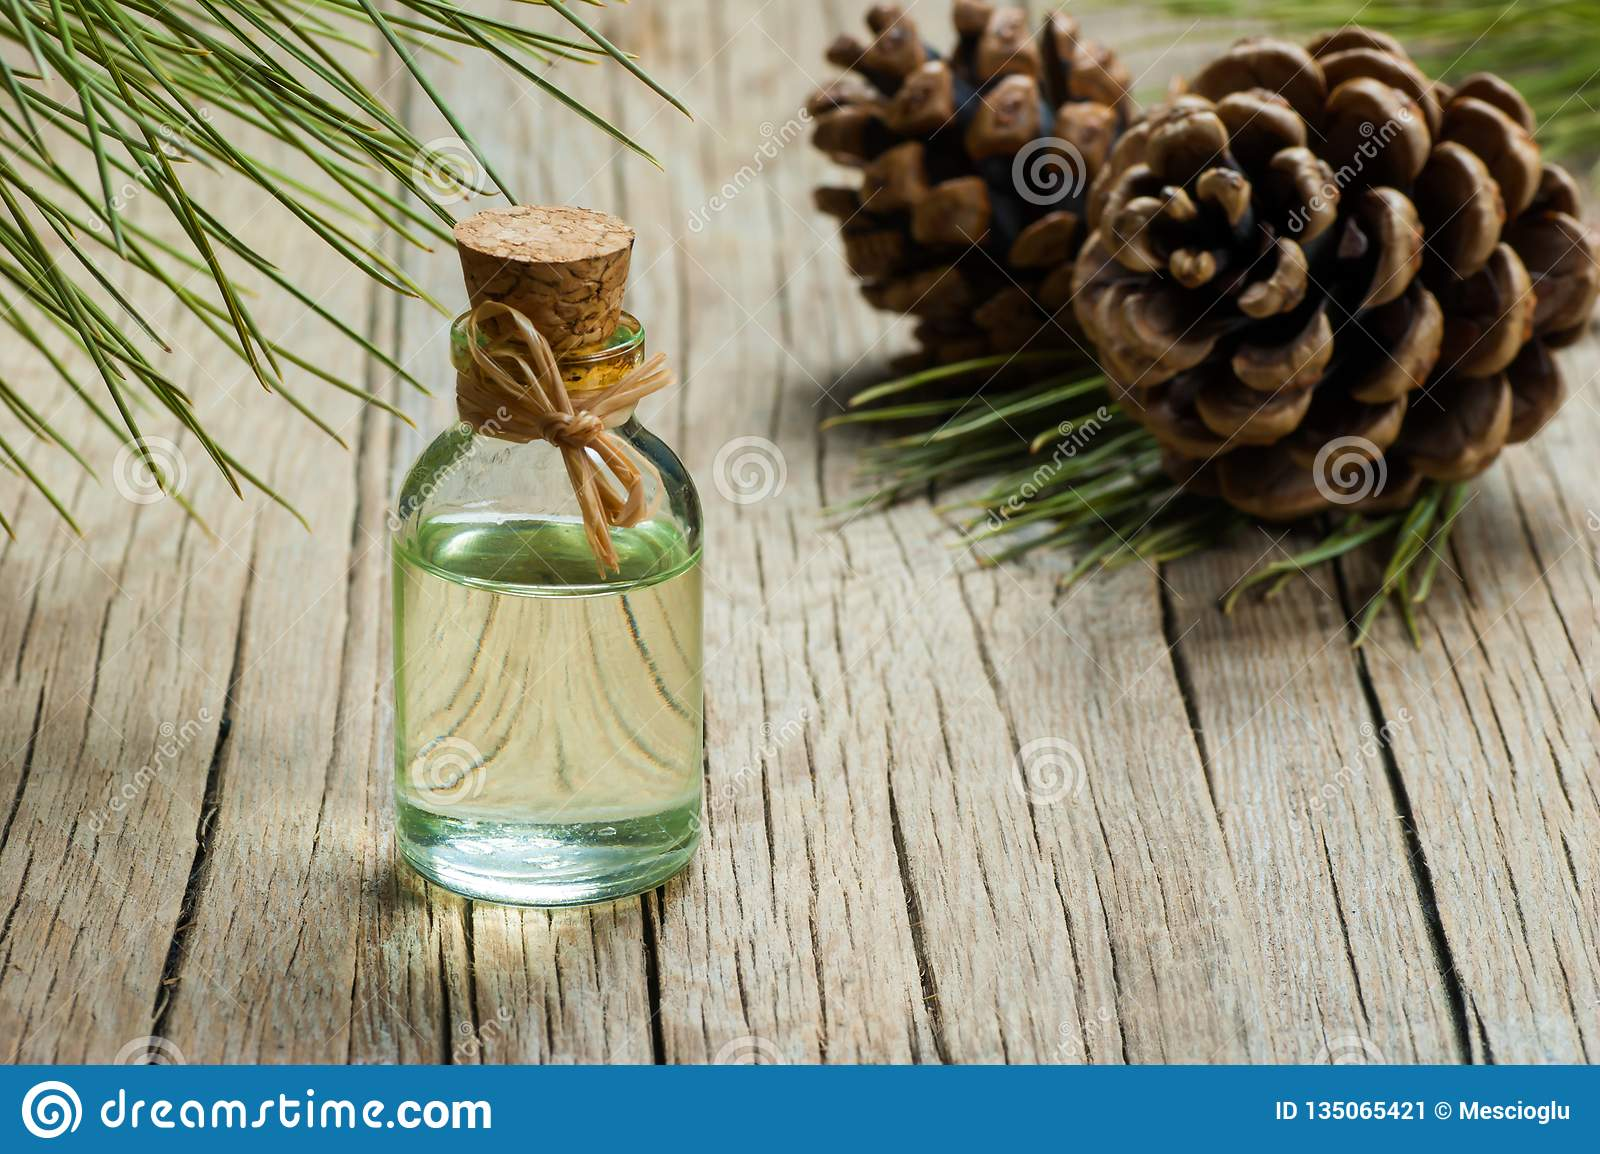 Pine Turpentine Essential Oil In Glass Bottle Stock Image - Image of